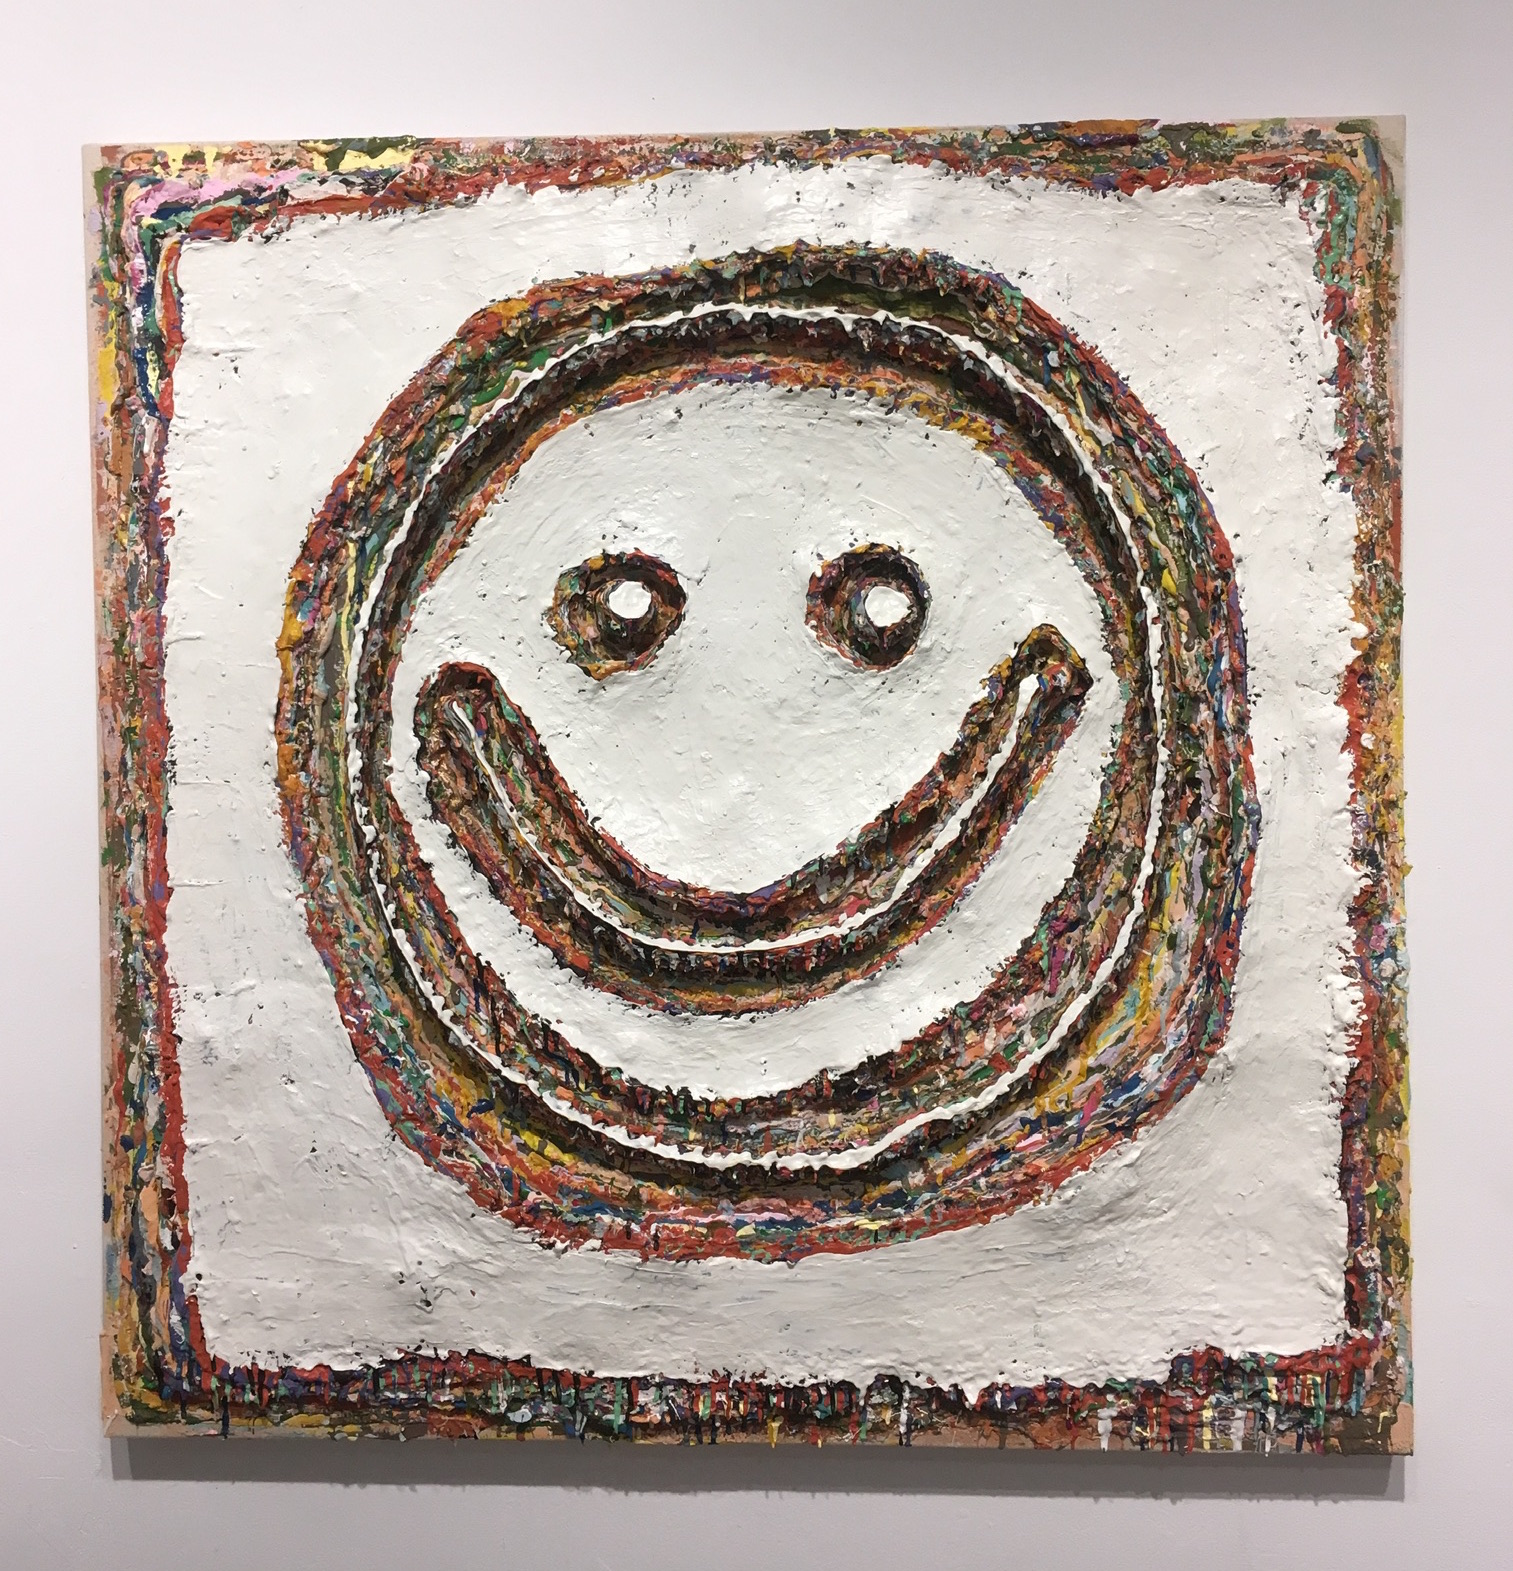 100 Layers #3 - Smiley Face